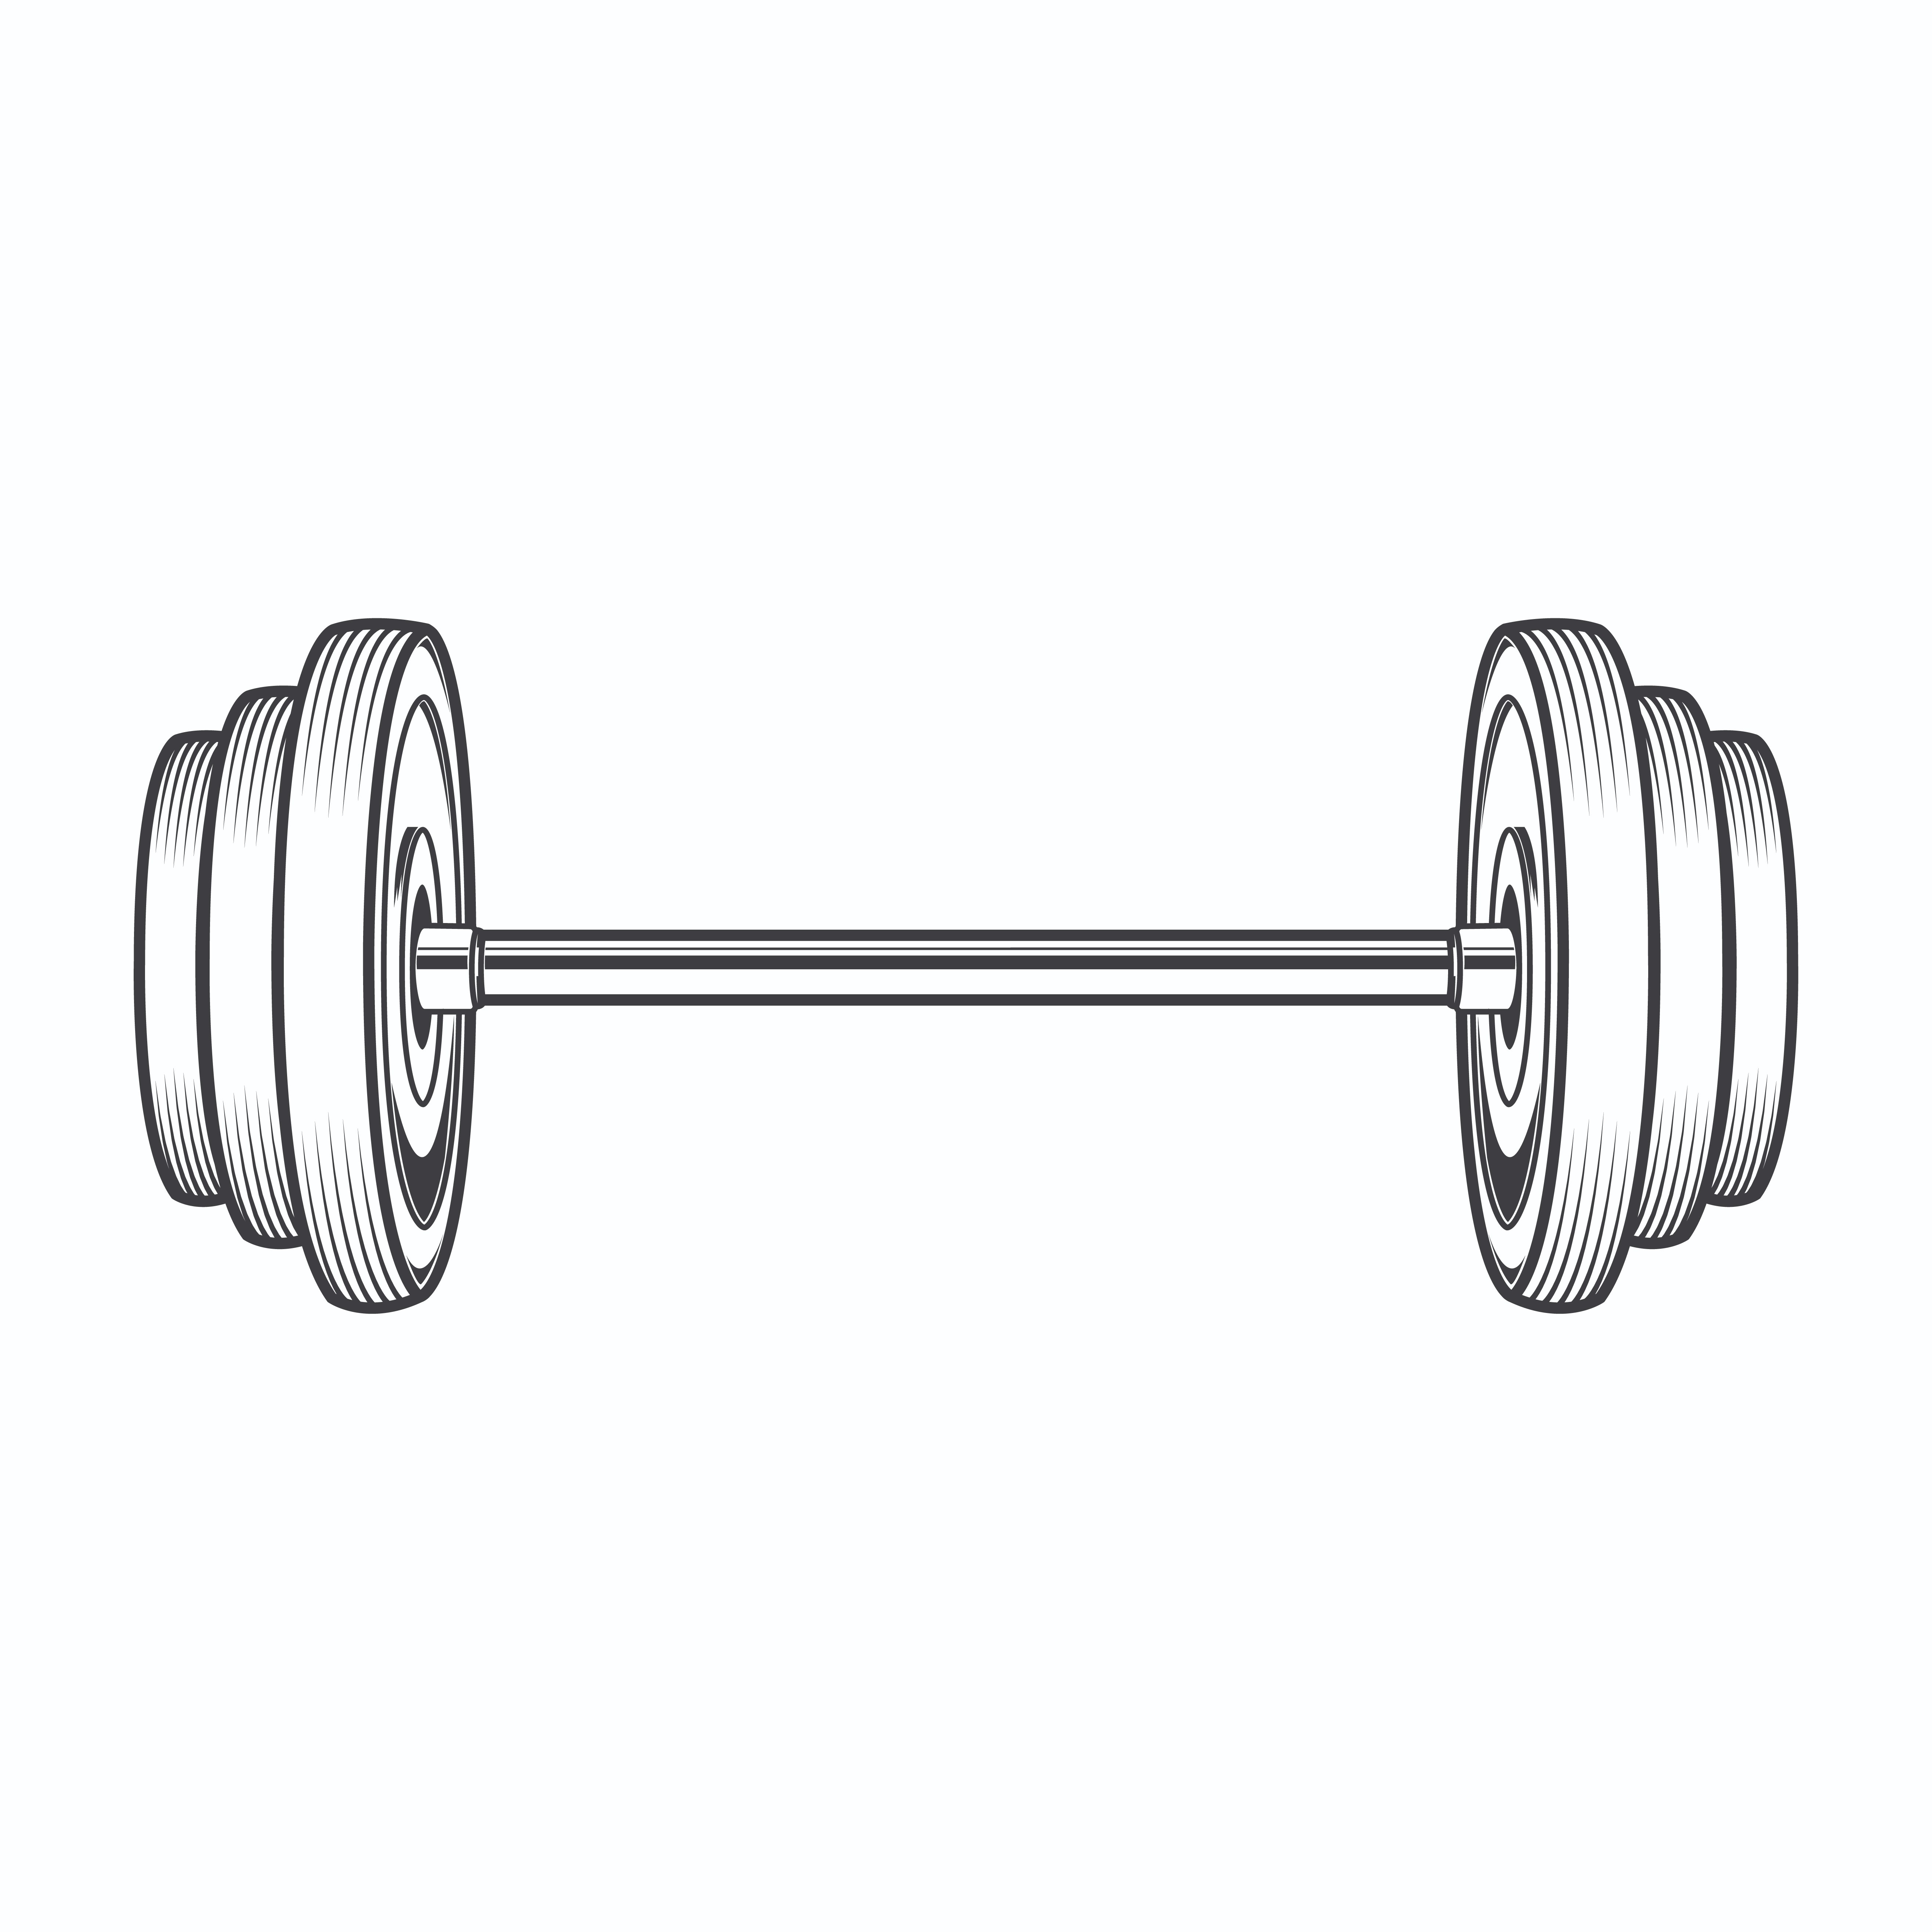 Bent Barbell Clipart | Free download best Bent Barbell ...